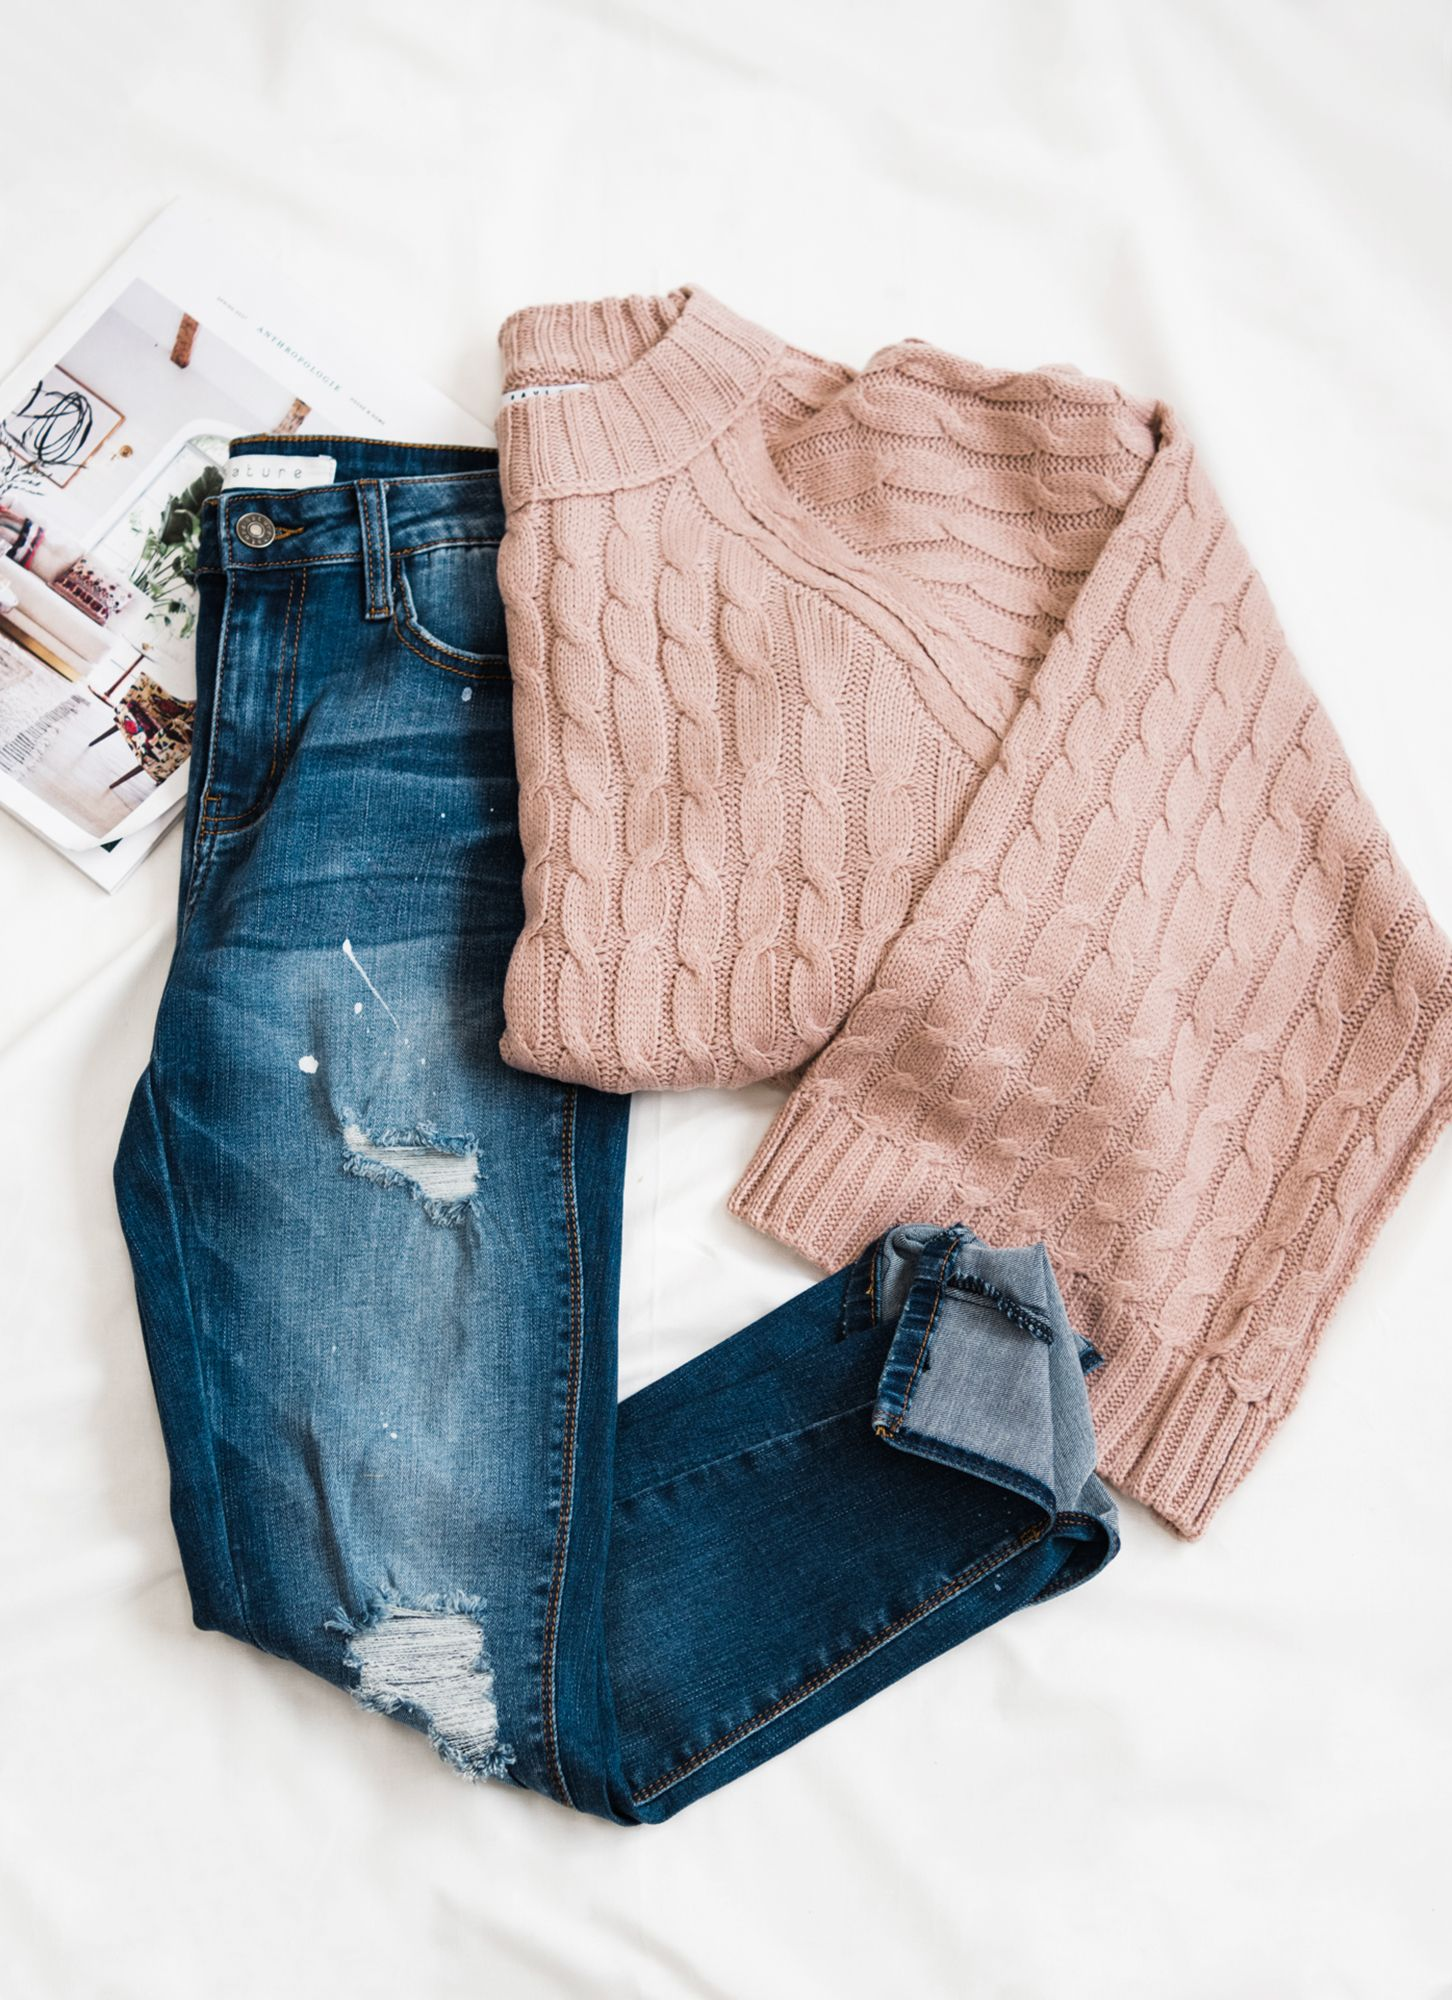 a019ad2eac3 ... Knit Sweater (Dusty Pink). How To Style A Cozy Sweater! Pair this  sweater with a pair of distressed denim for a chic and comfy fall look!